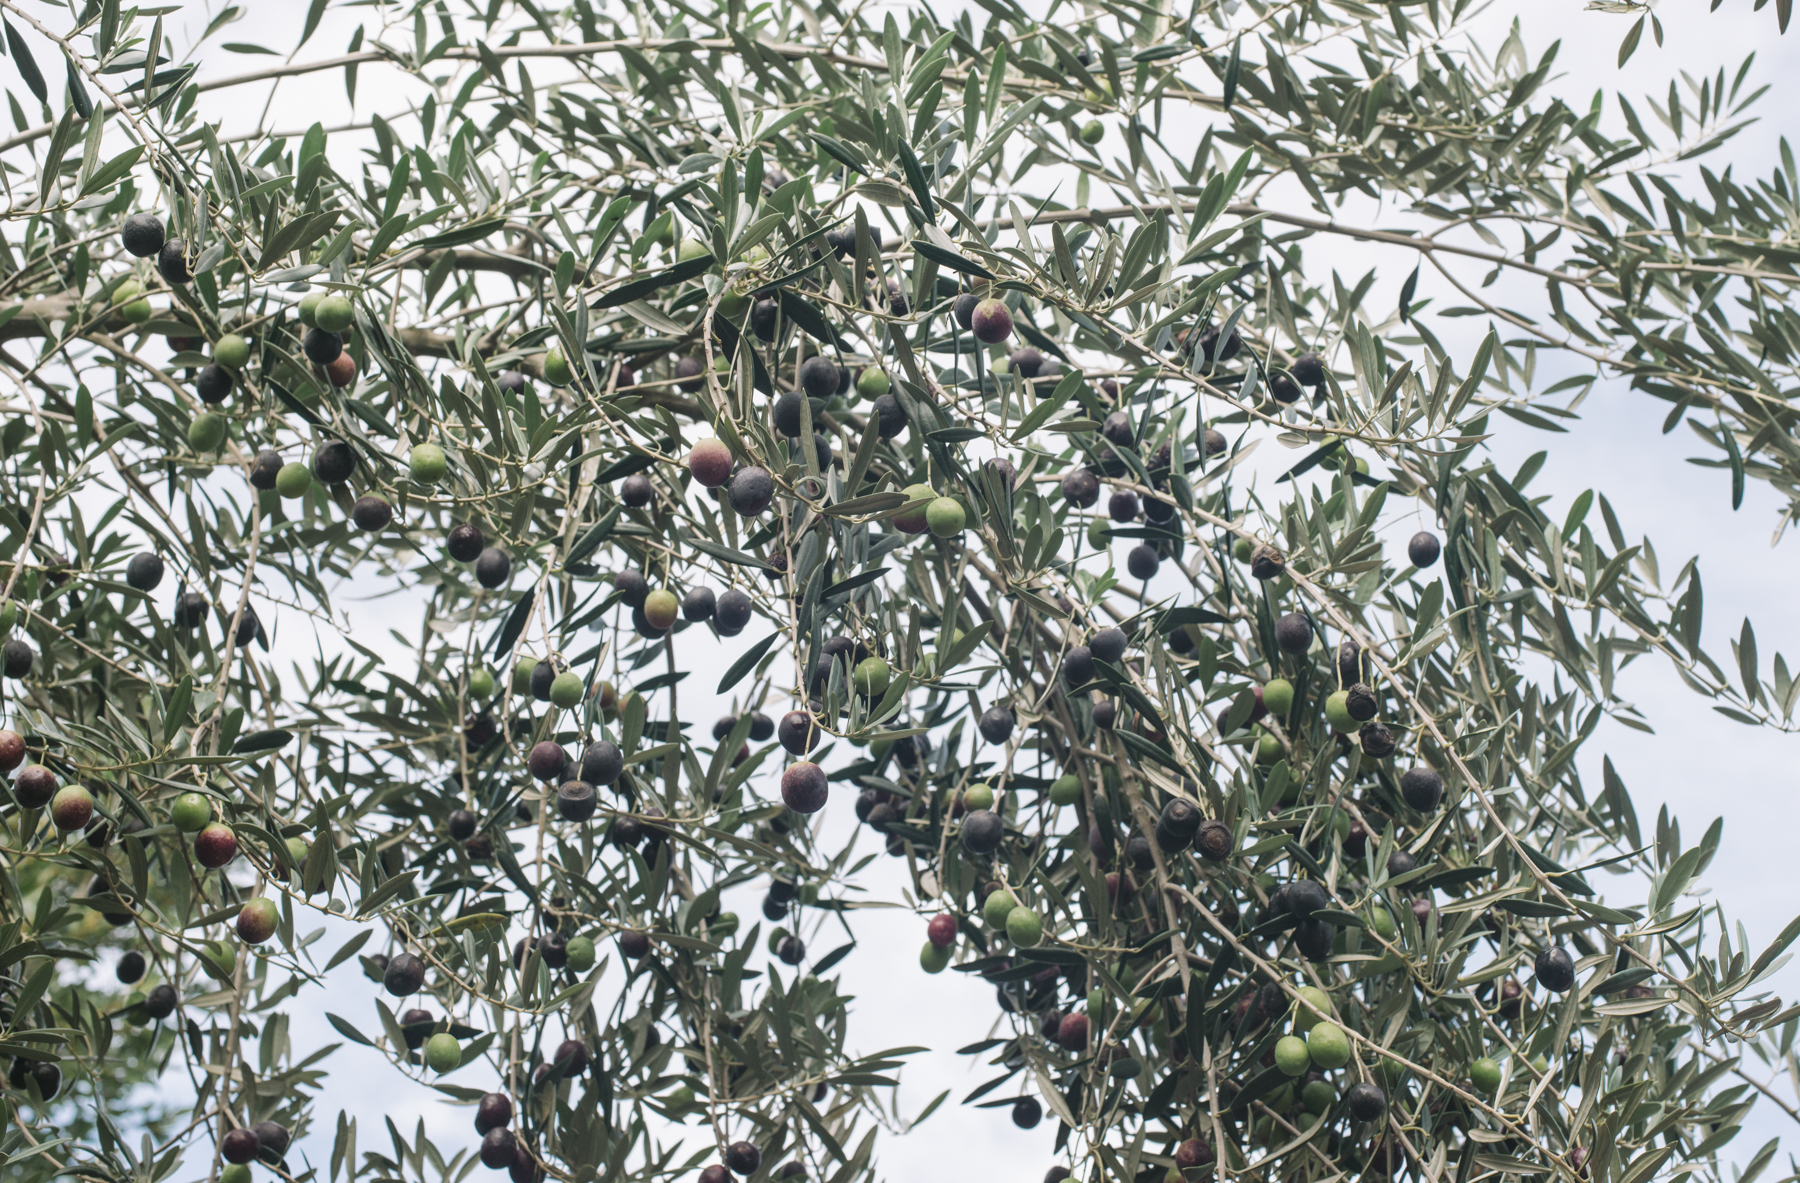 Olives on a much higher branch